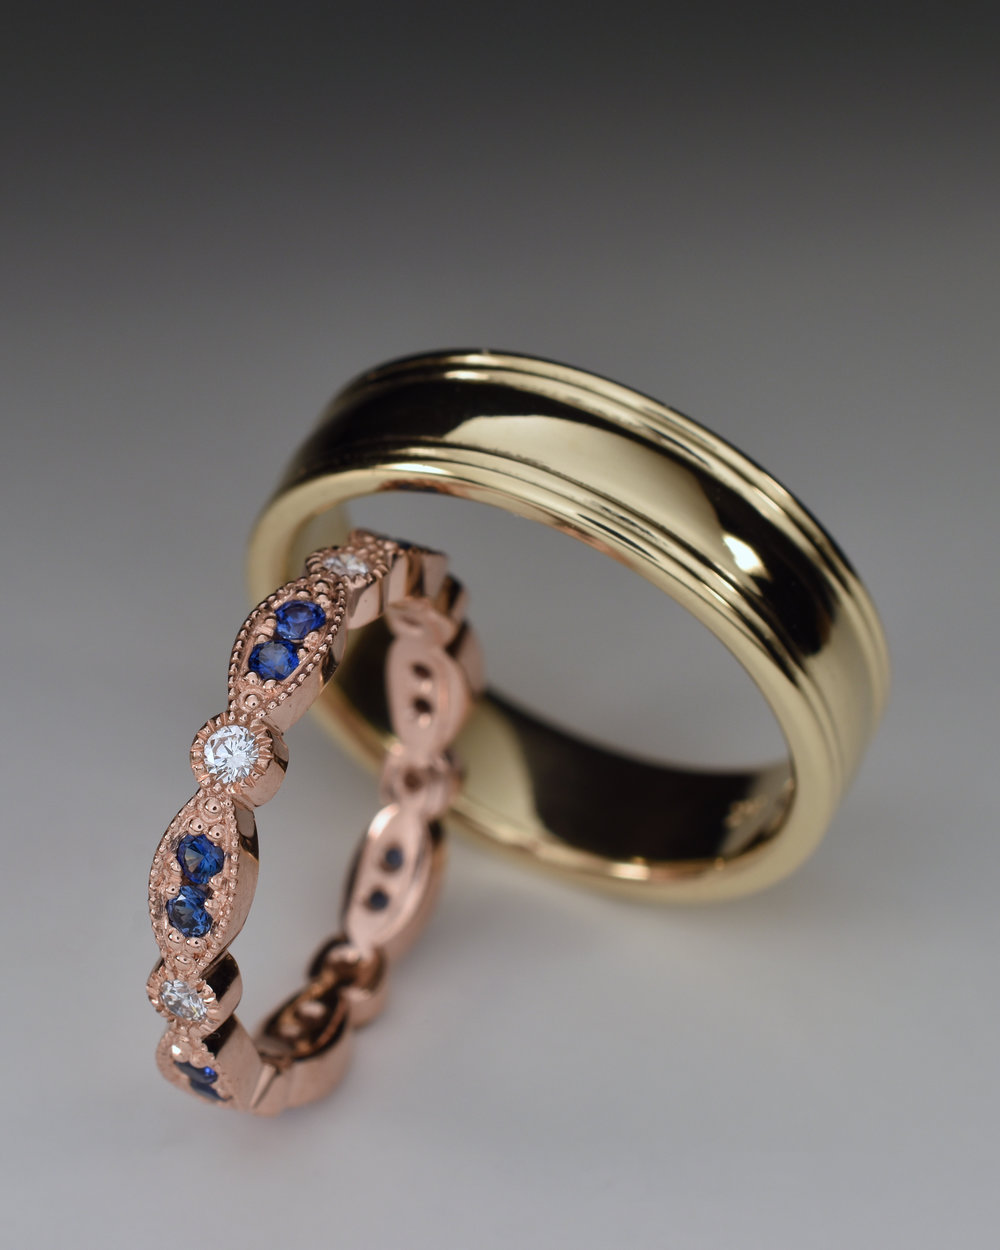 Ladies 14k rose gold band with diamonds and blue sapphires. Gents 14k yellow gold band with linear detail.